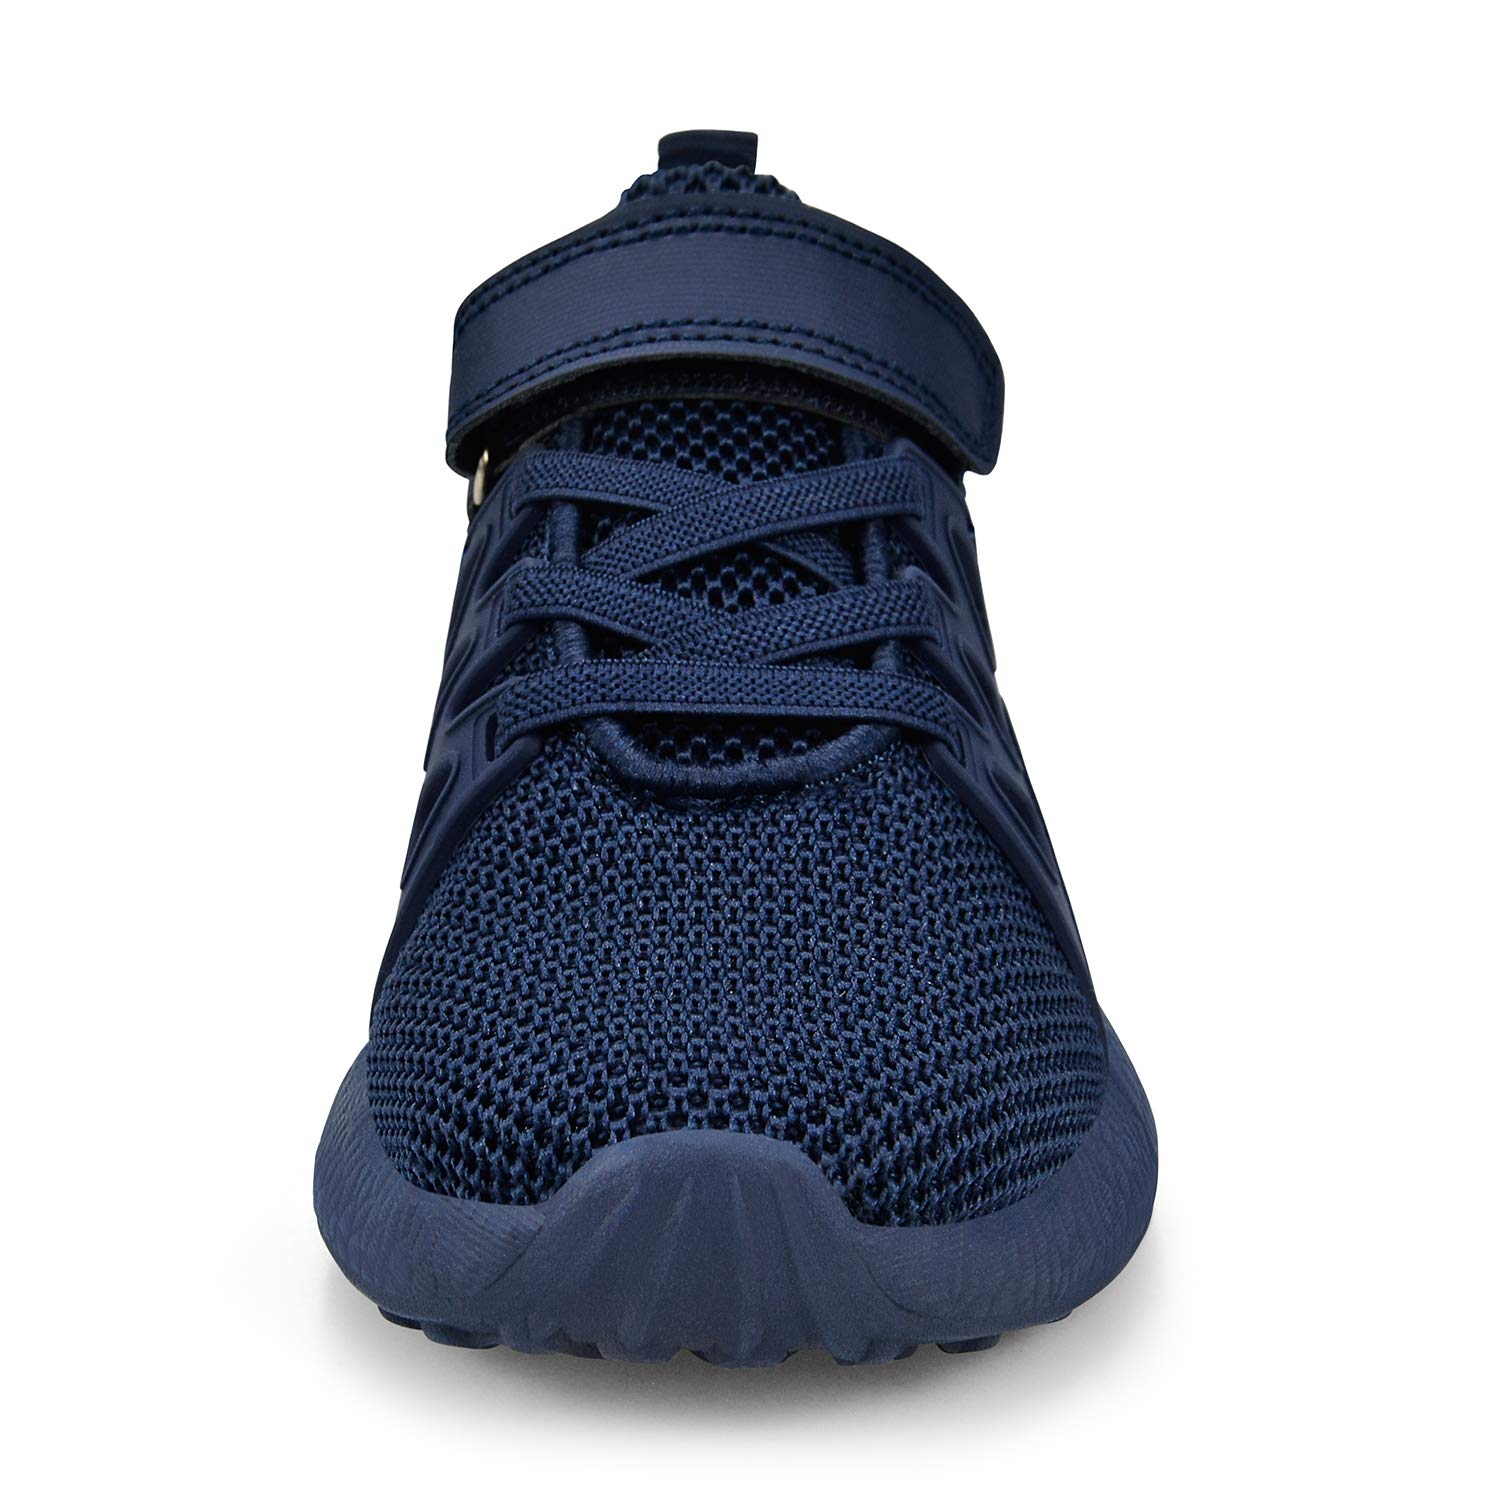 MARSVOVO Kids Sneakers Lightweigh Casual Athletic Tennis Walking Shoes for Boys Girls